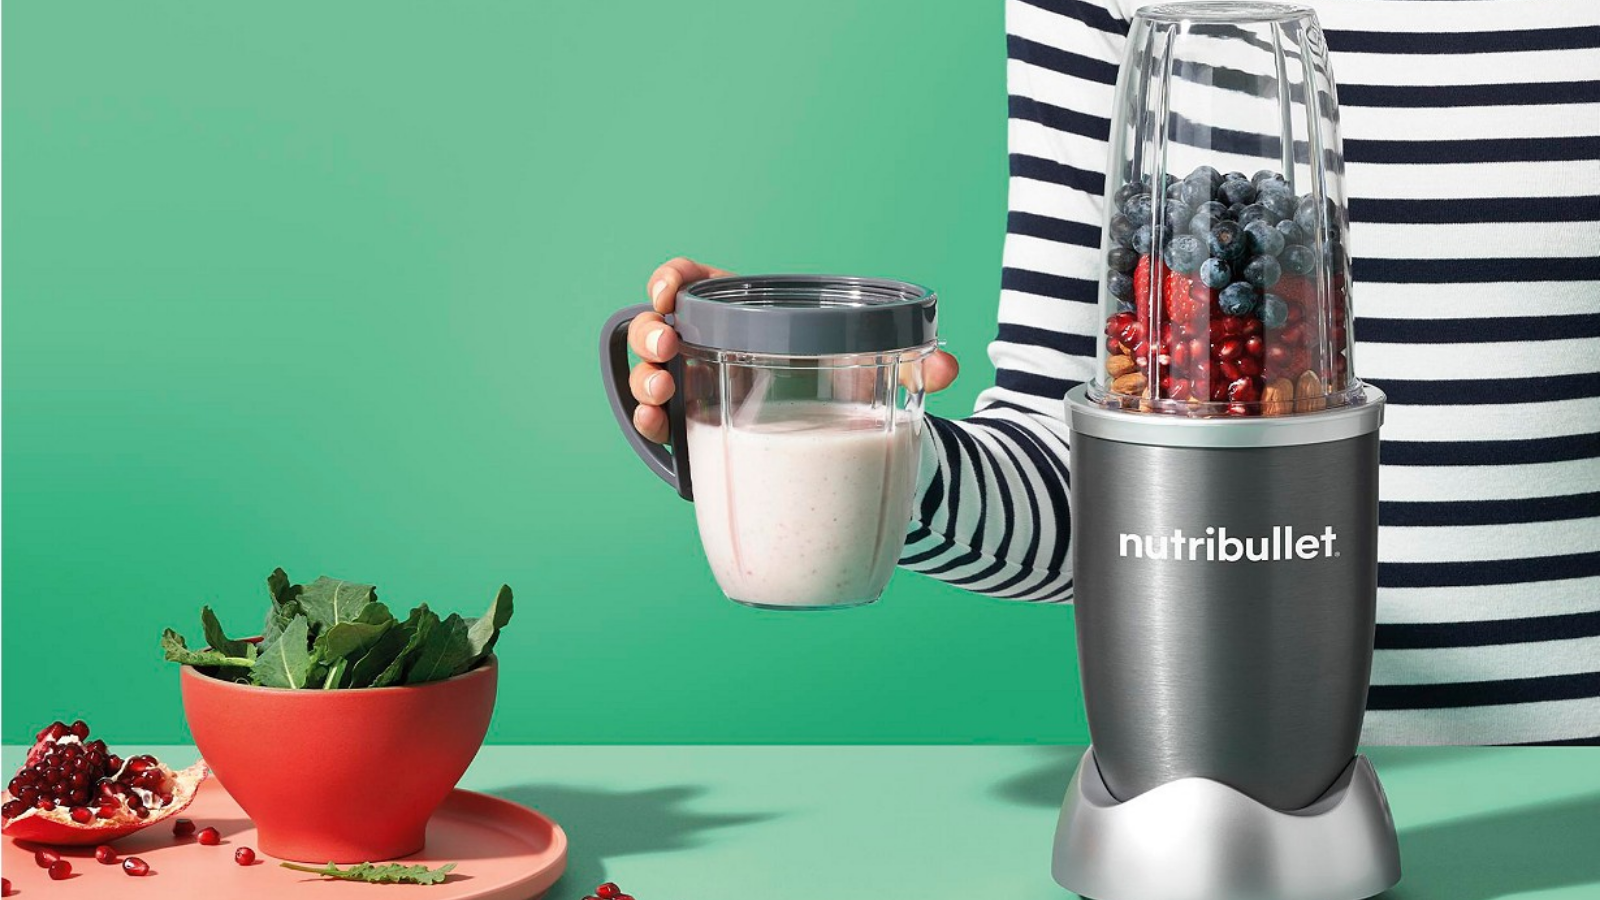 Nutribullet's Black Friday 2020 sale is kicking off right now—get the unique code